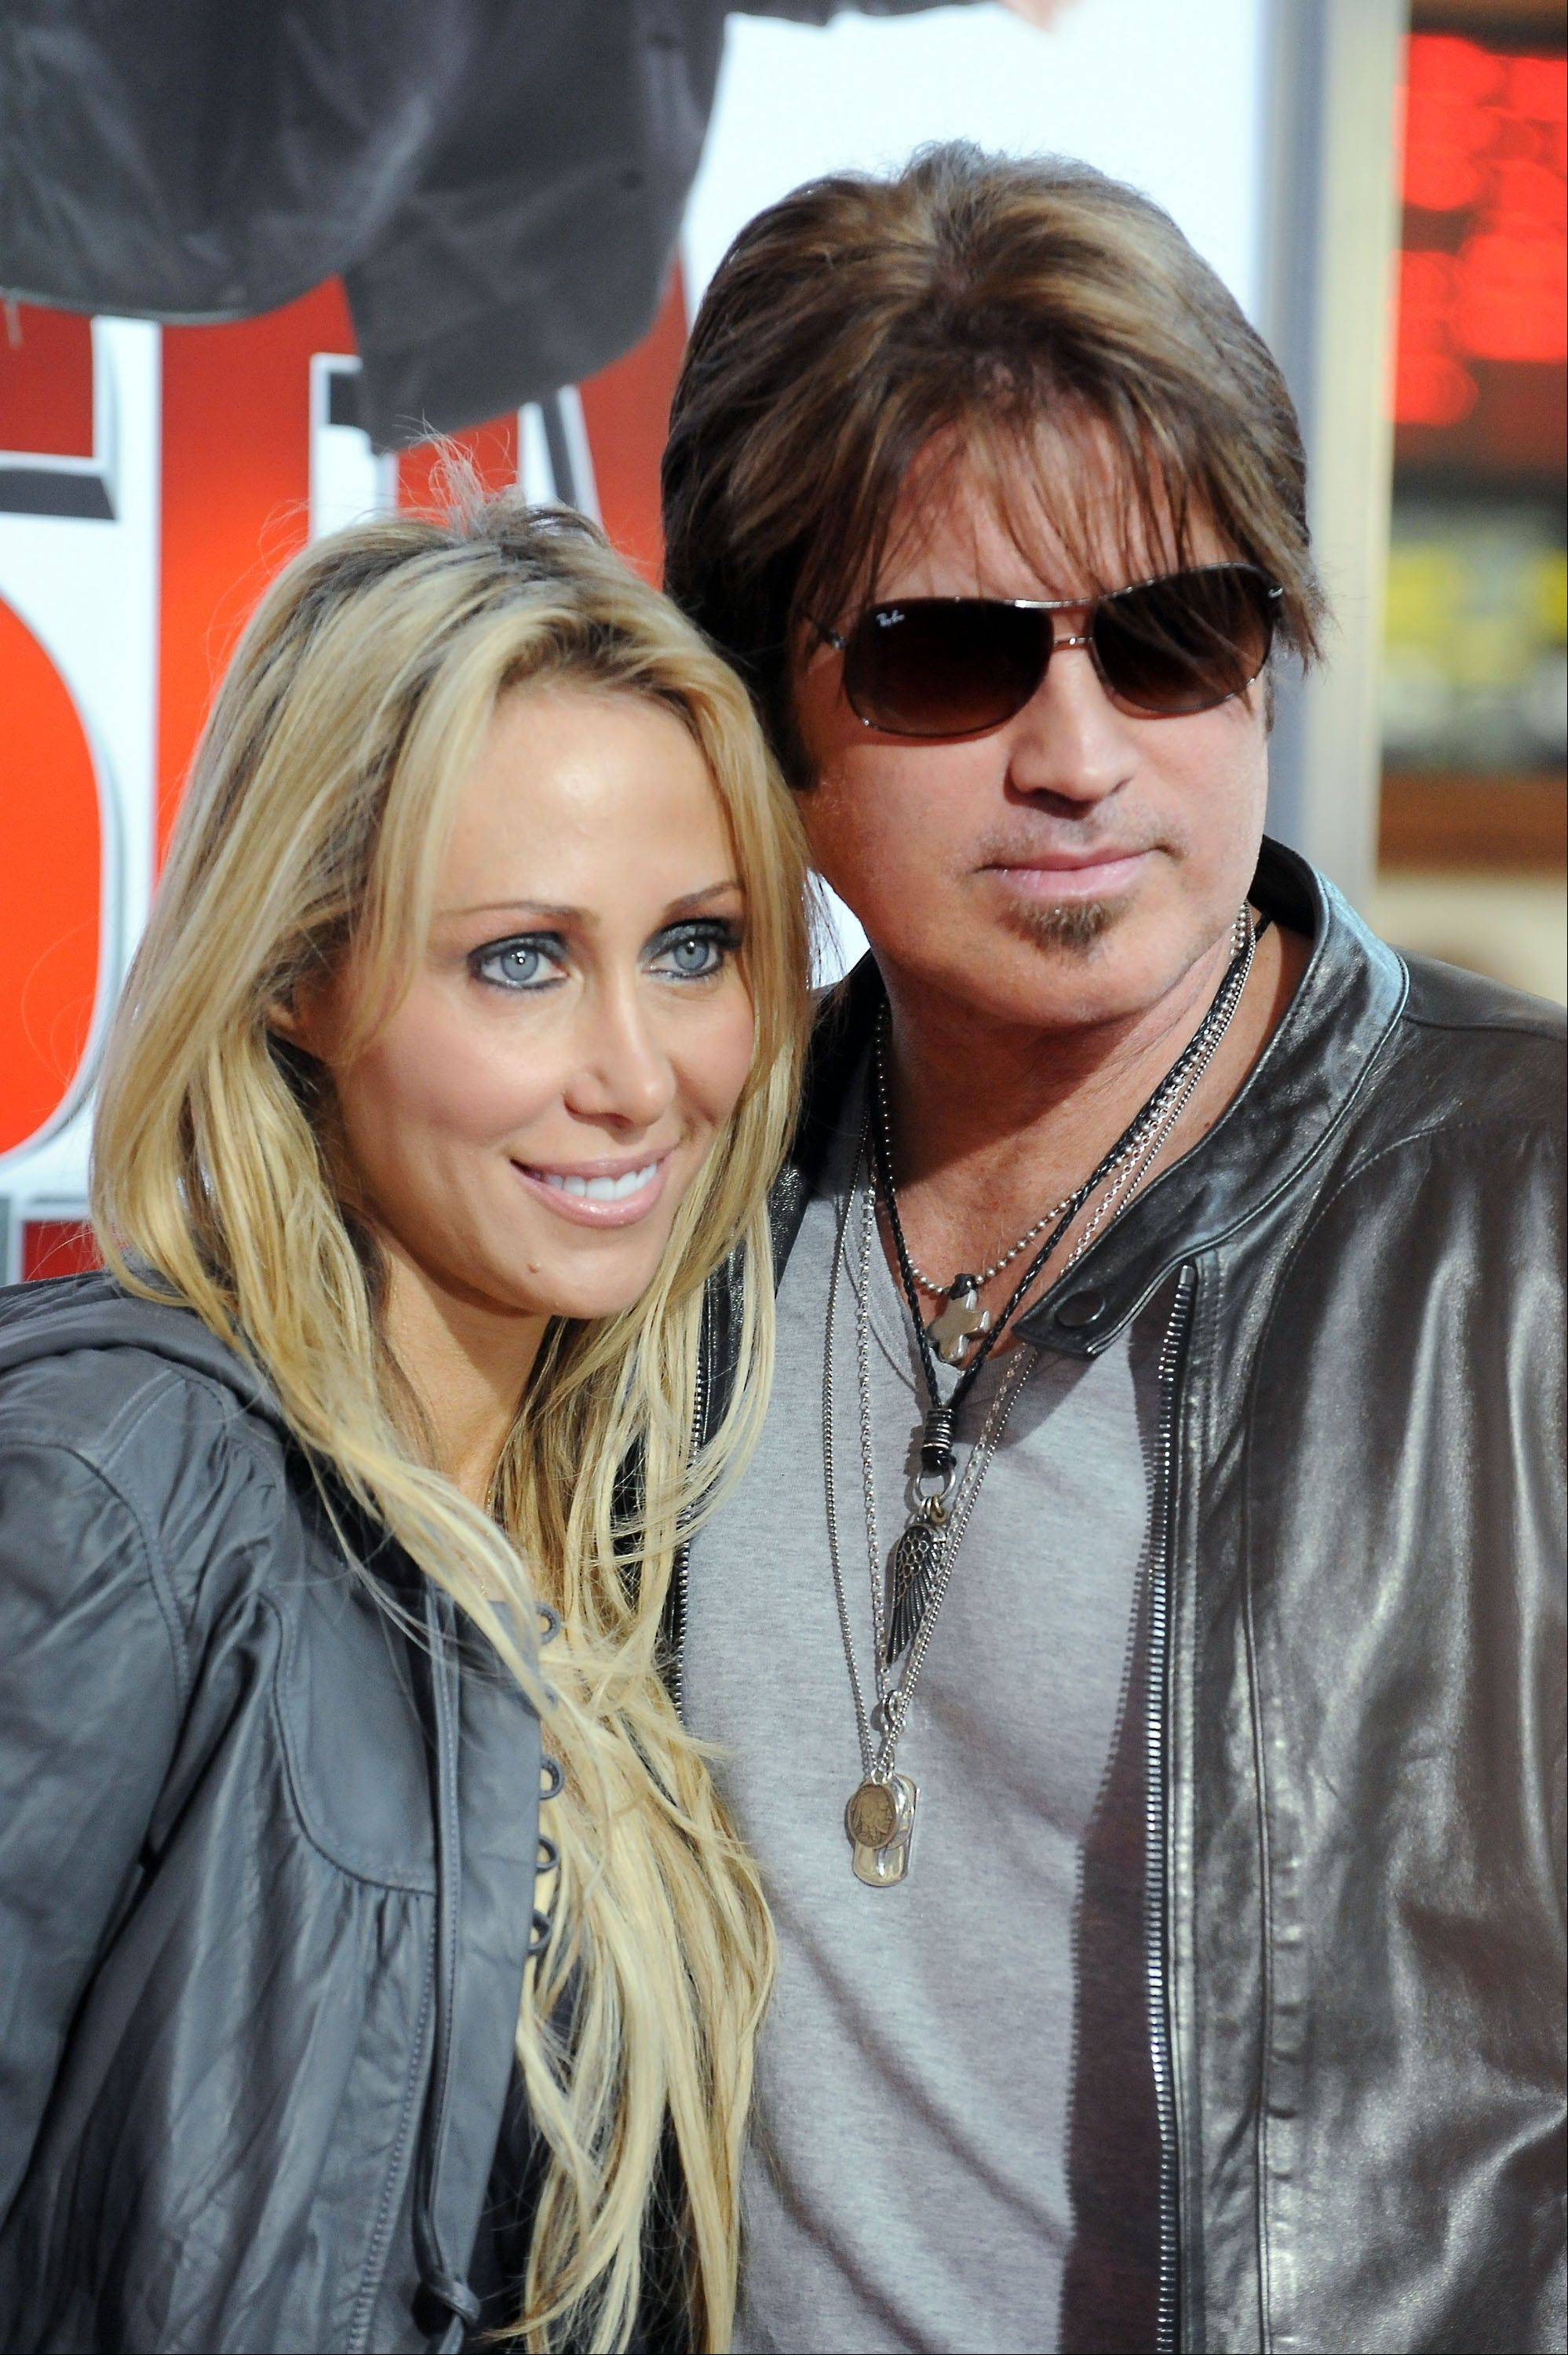 Court records show Tish Cyrus filed for divorce from Billy Ray Cyrus on Thursday in Los Angeles Superior Court.